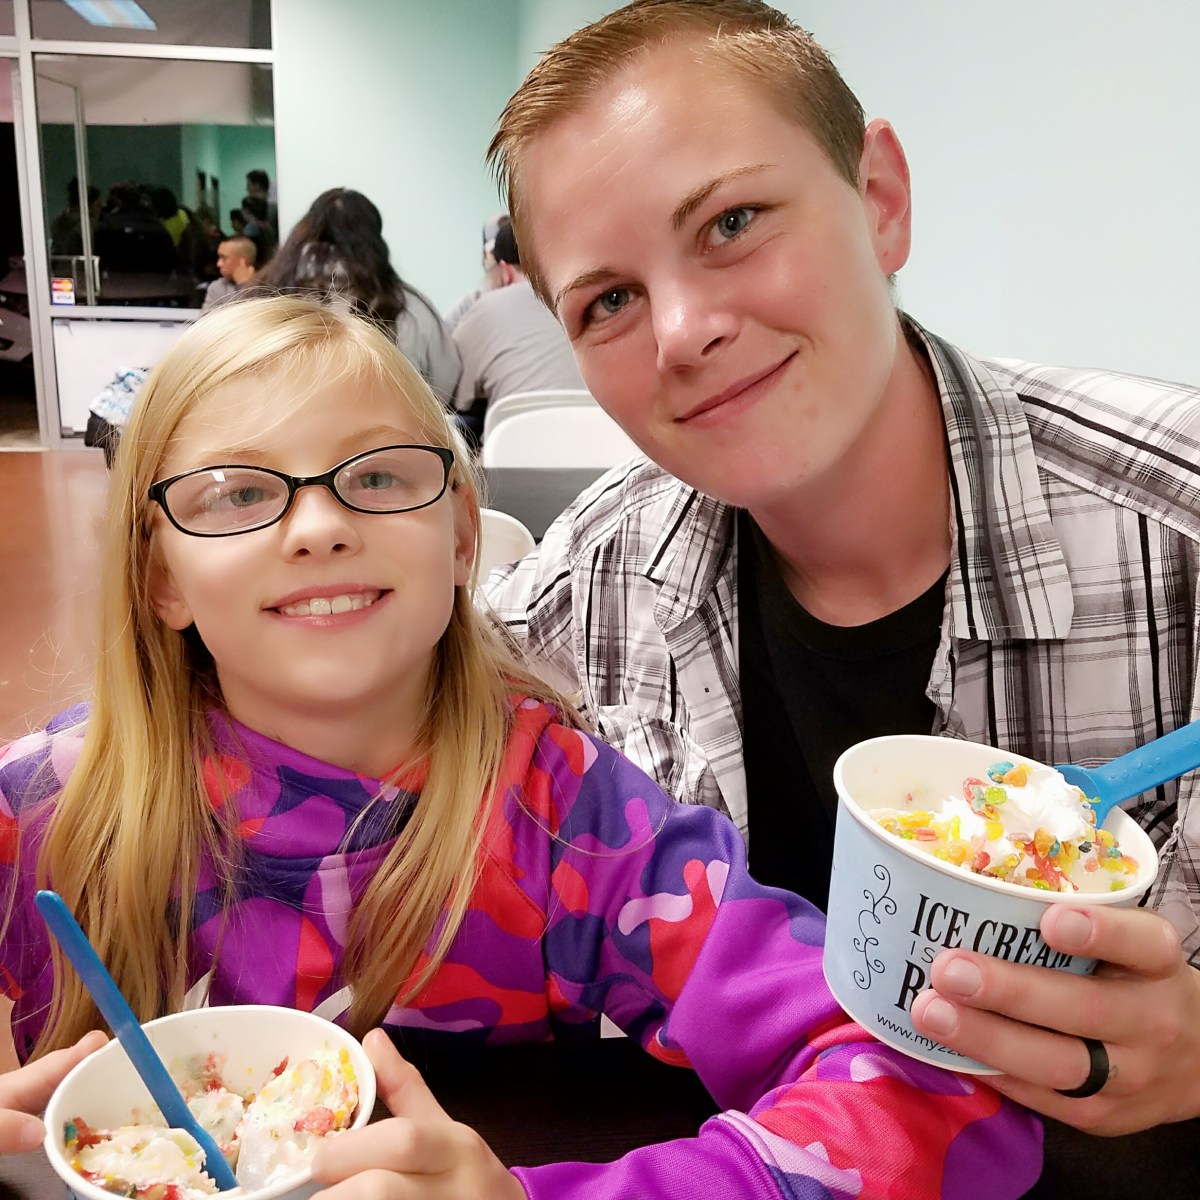 Ferg and kids at 22 below rolled ice cream